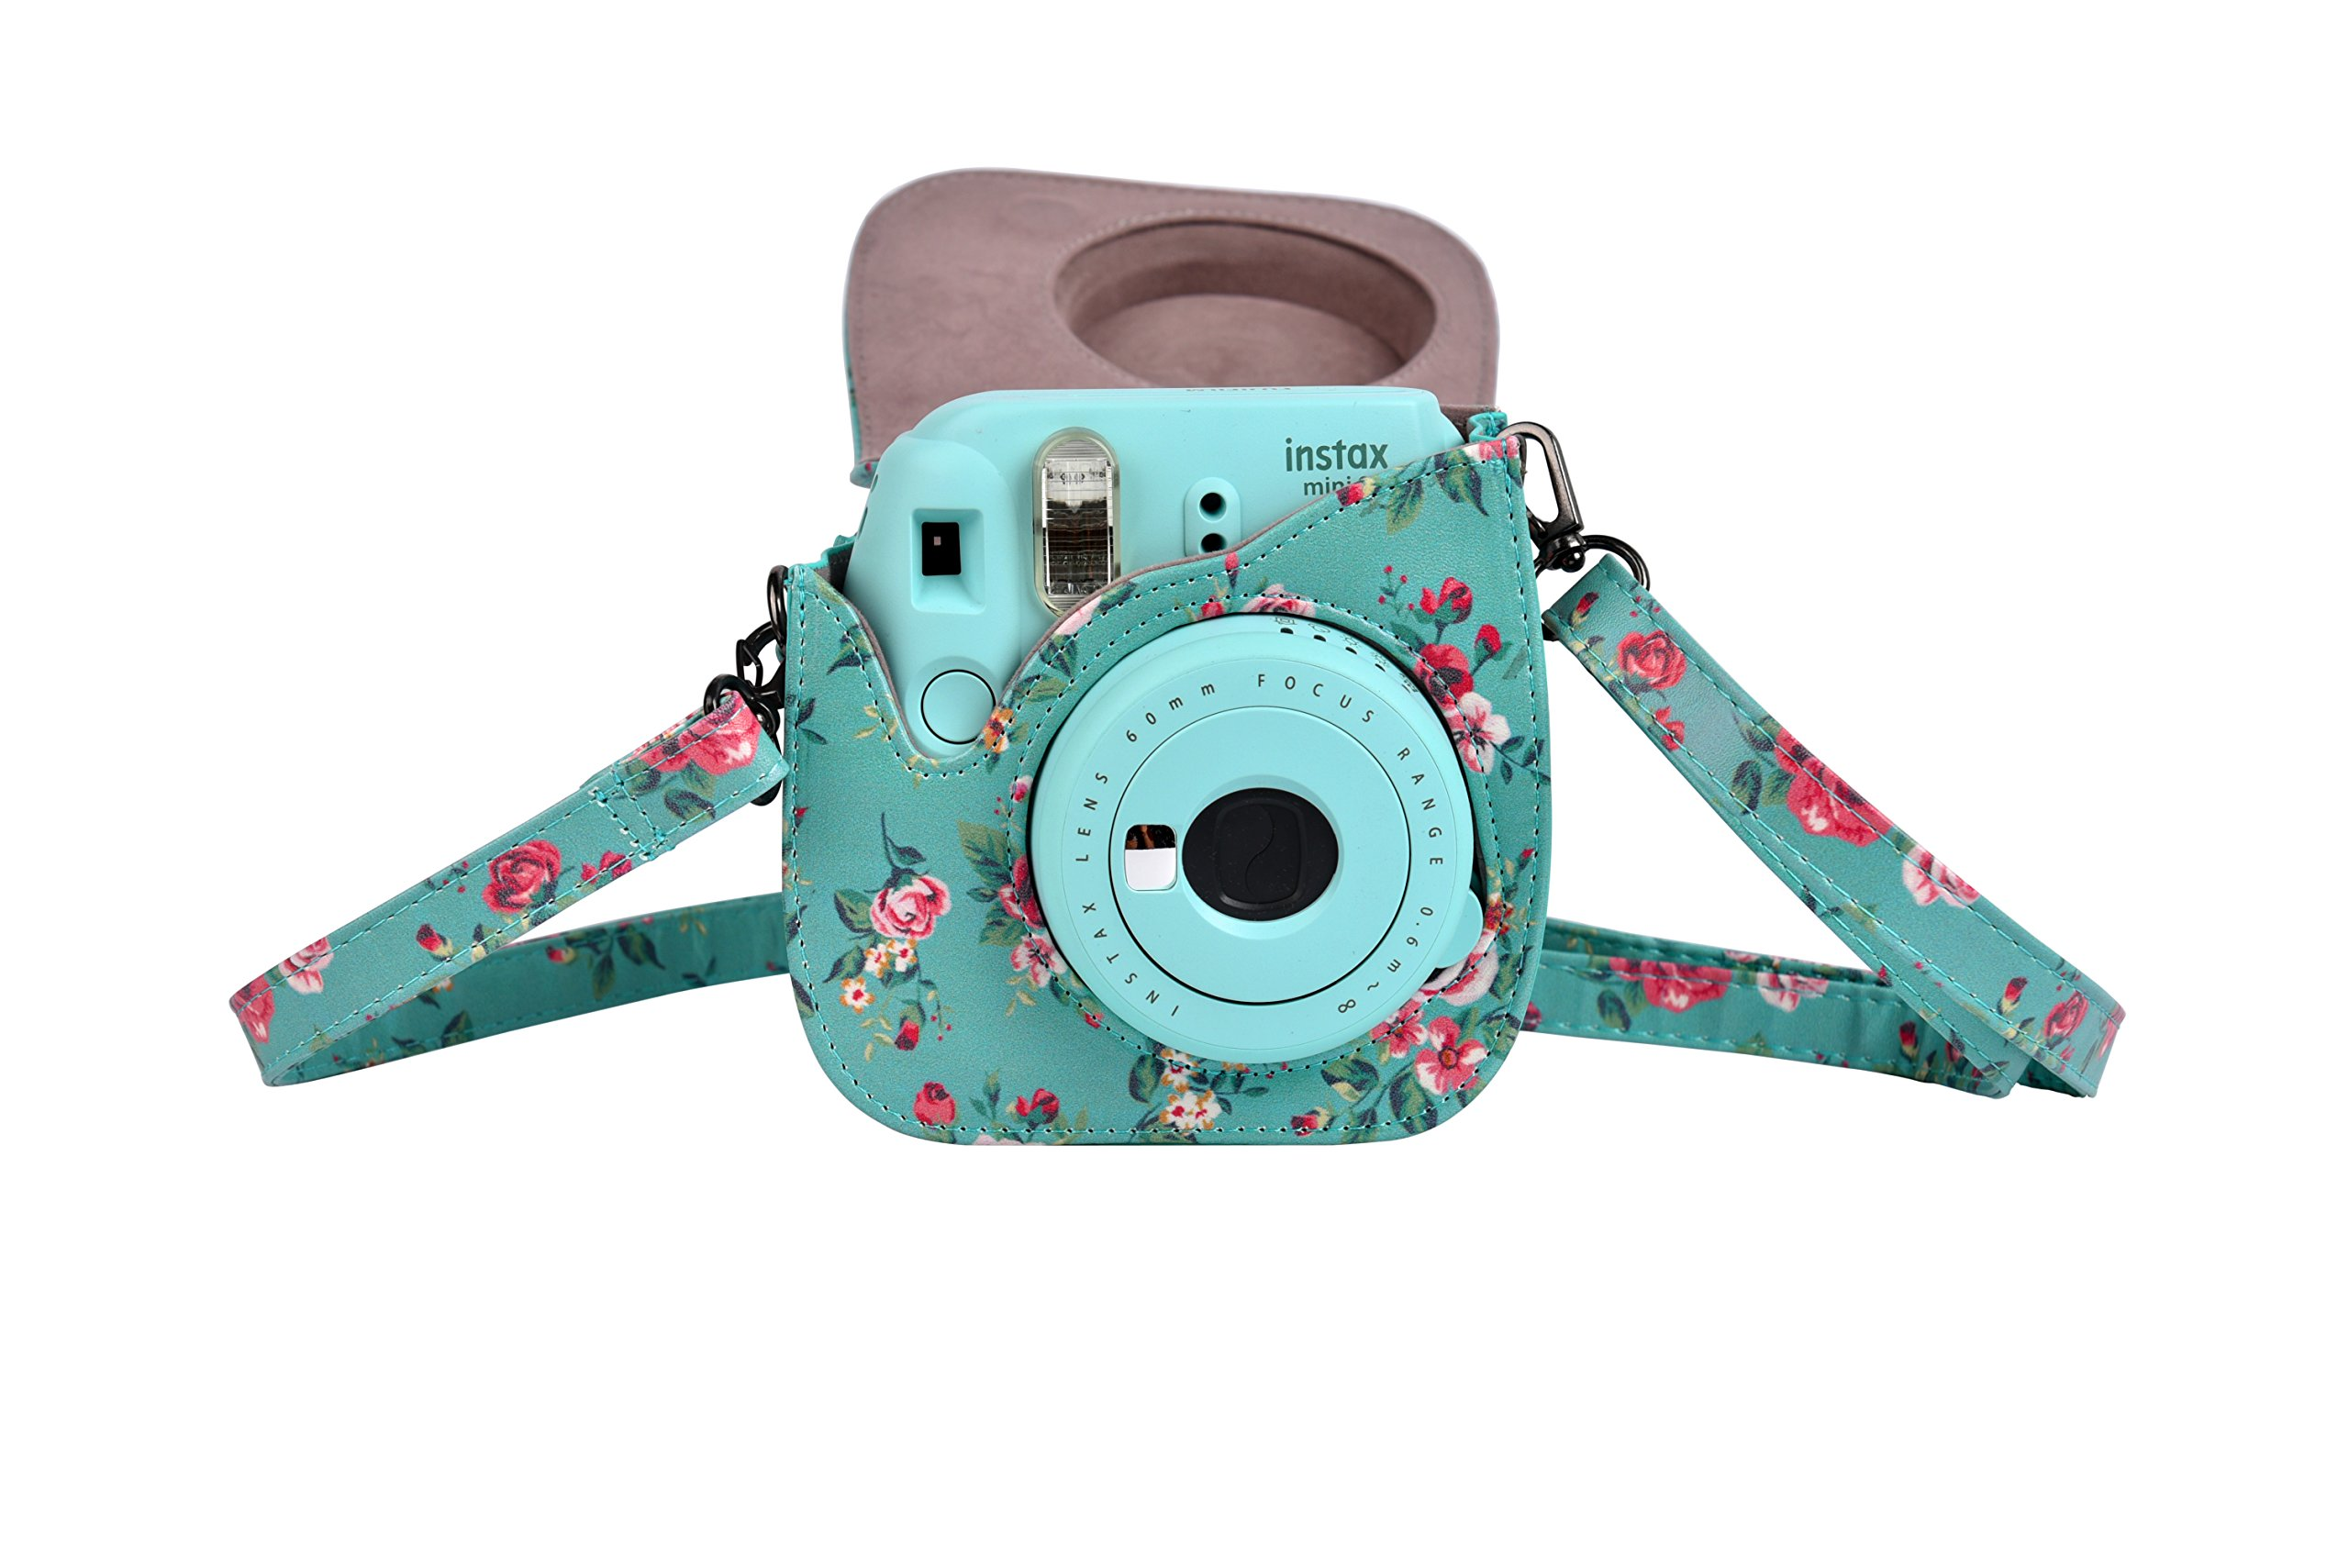 Fujifilm Instax Mini 8 Mini 8+ Mini 9 Camera Case, Yoption Classic Vintage Pu Leather Mini 8/8+ Mini 9 Camera Case Bag for Fujifilm Instax Mini 8 Mini 8+ Mini 9 Instant Film Camera